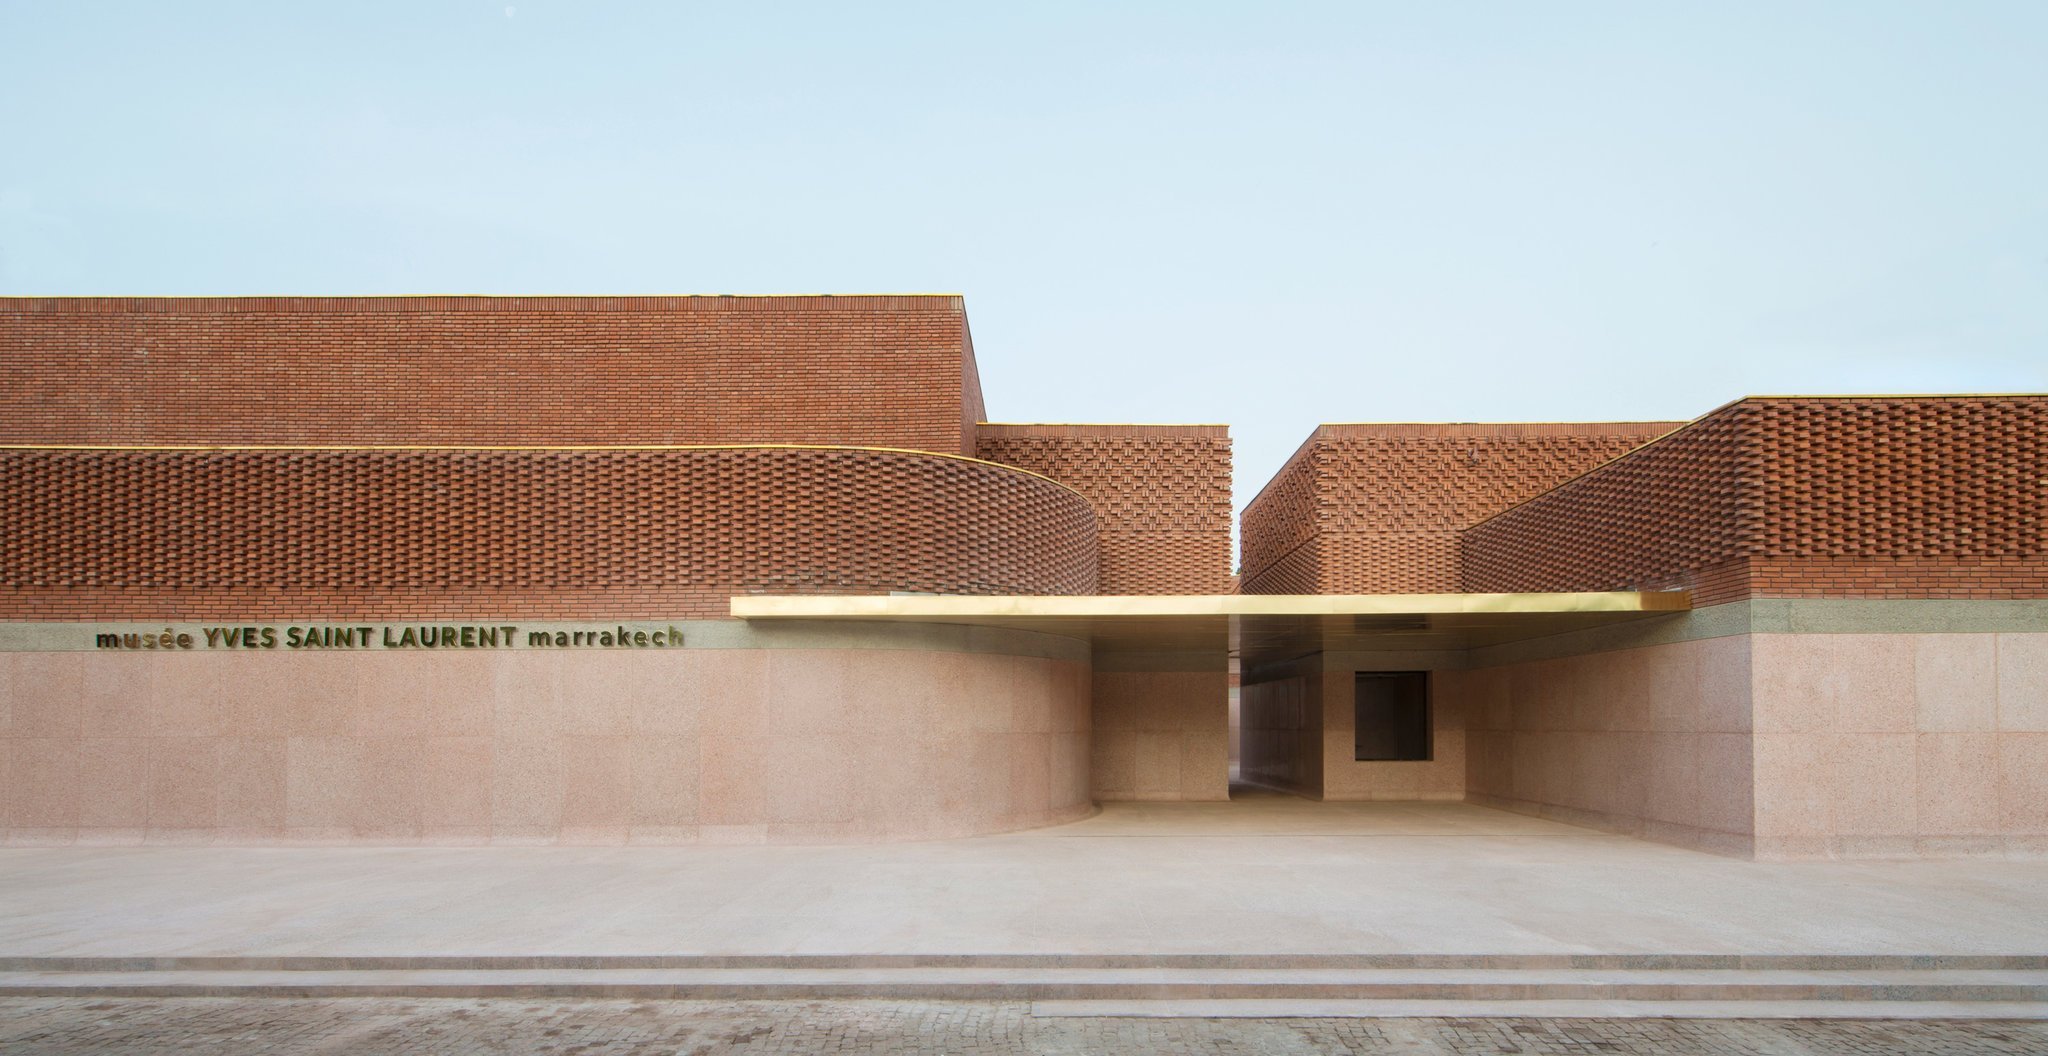 Entrance of Yves Saint Laurent Museum in Marrakech as seen www.yellowtrace.com.au & www.archidaily.com